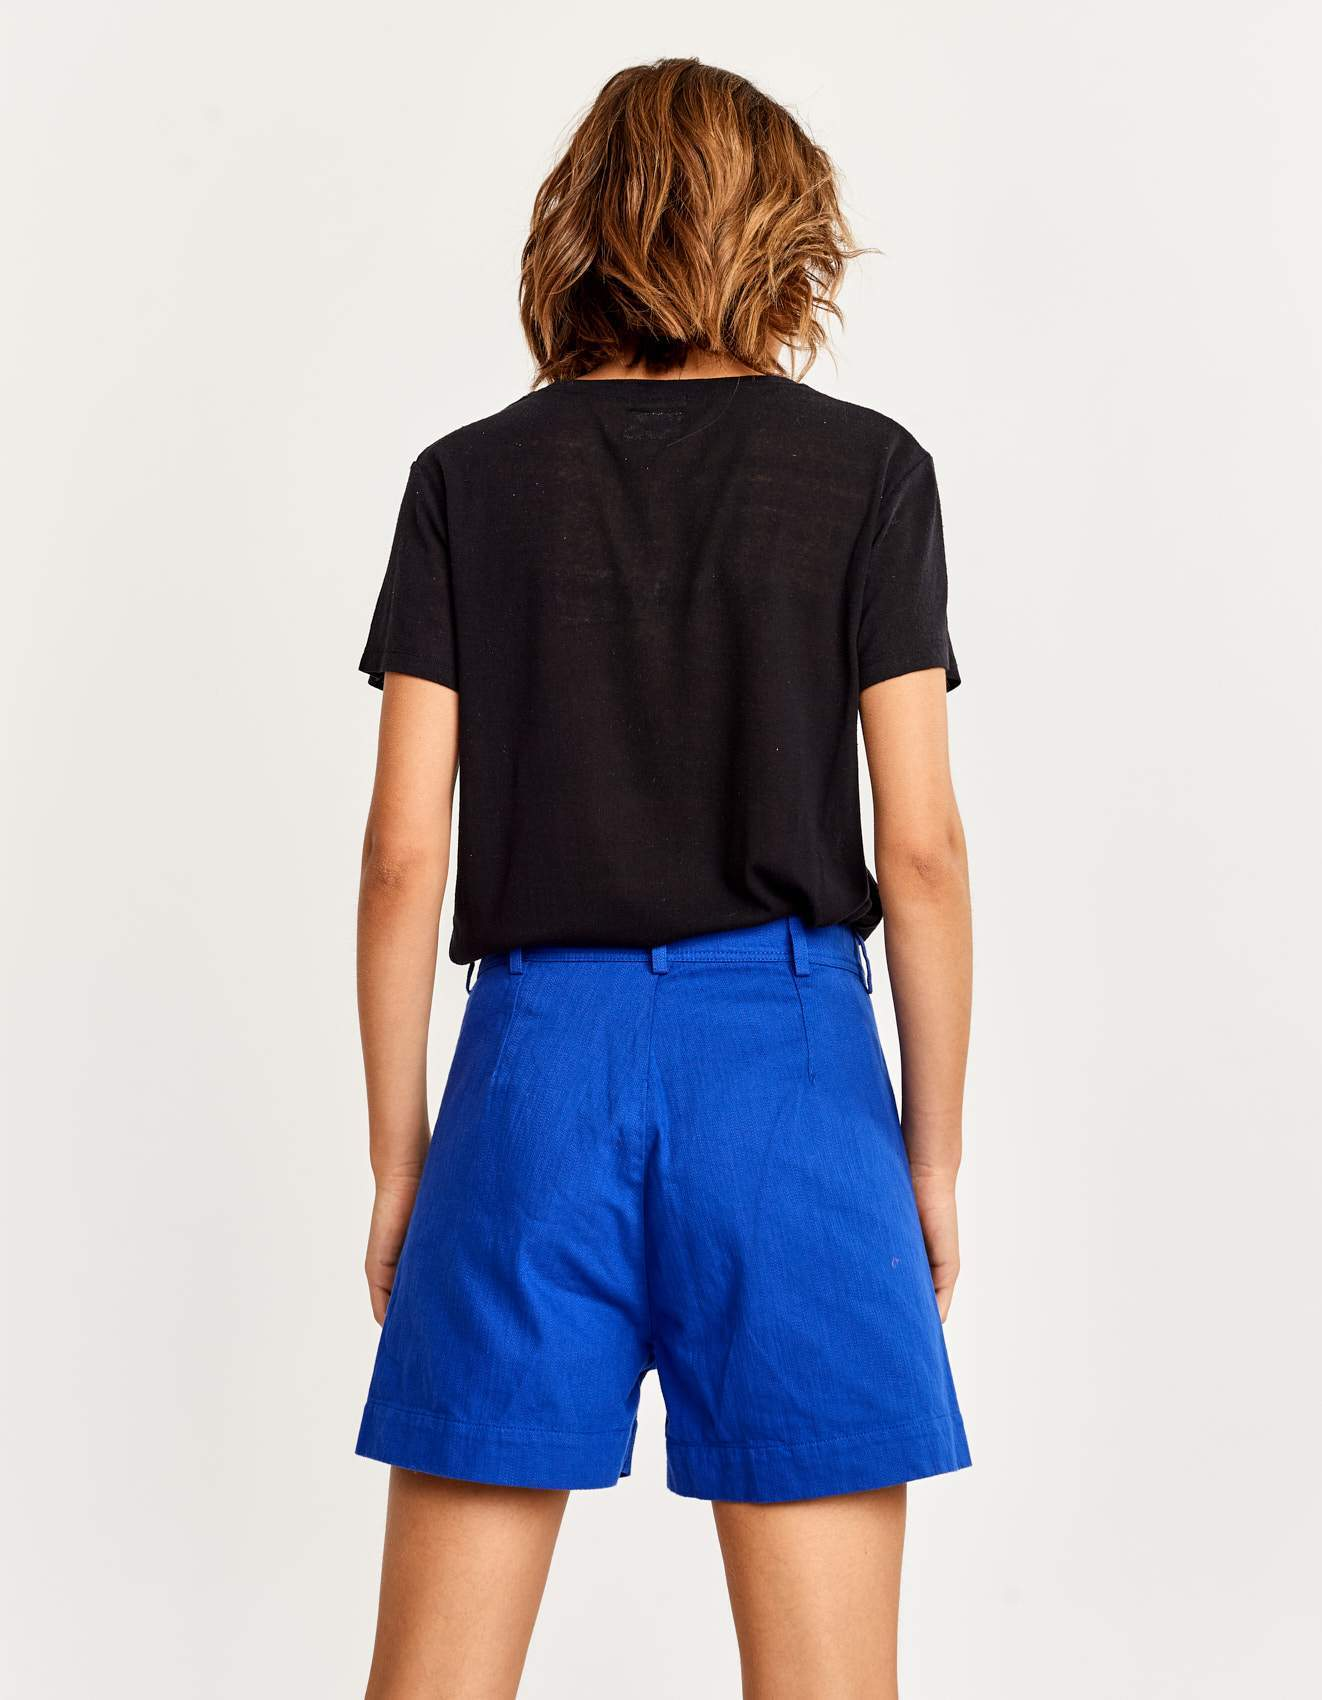 Bellerose blue high-waisted shorts for women